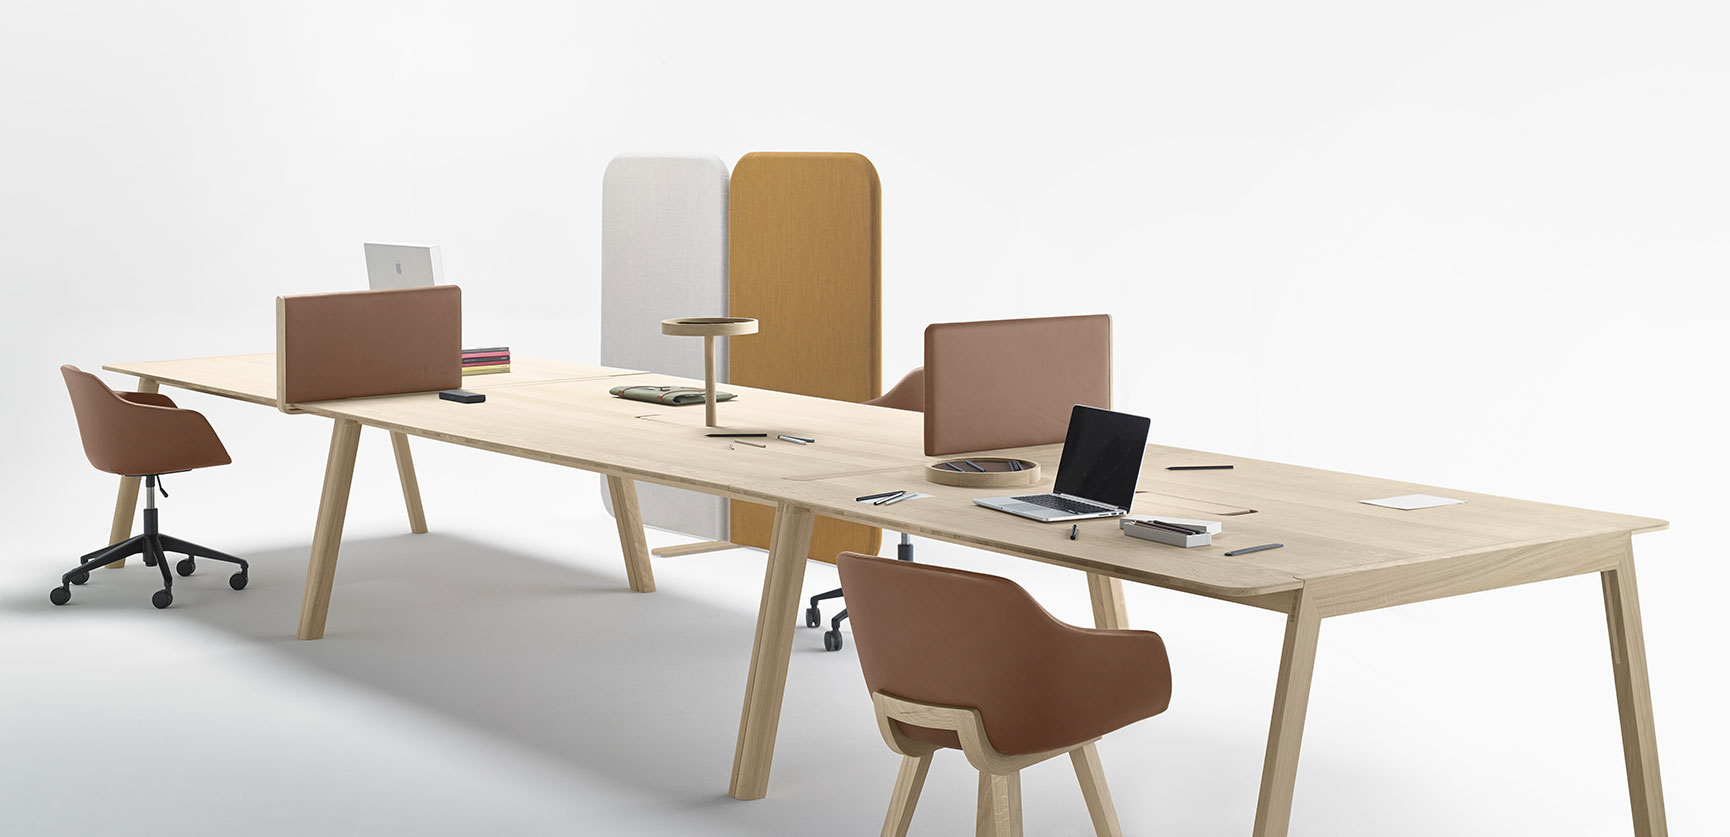 Alki meubles contemporains en bois fabriqu s au pays for Table de bureau design